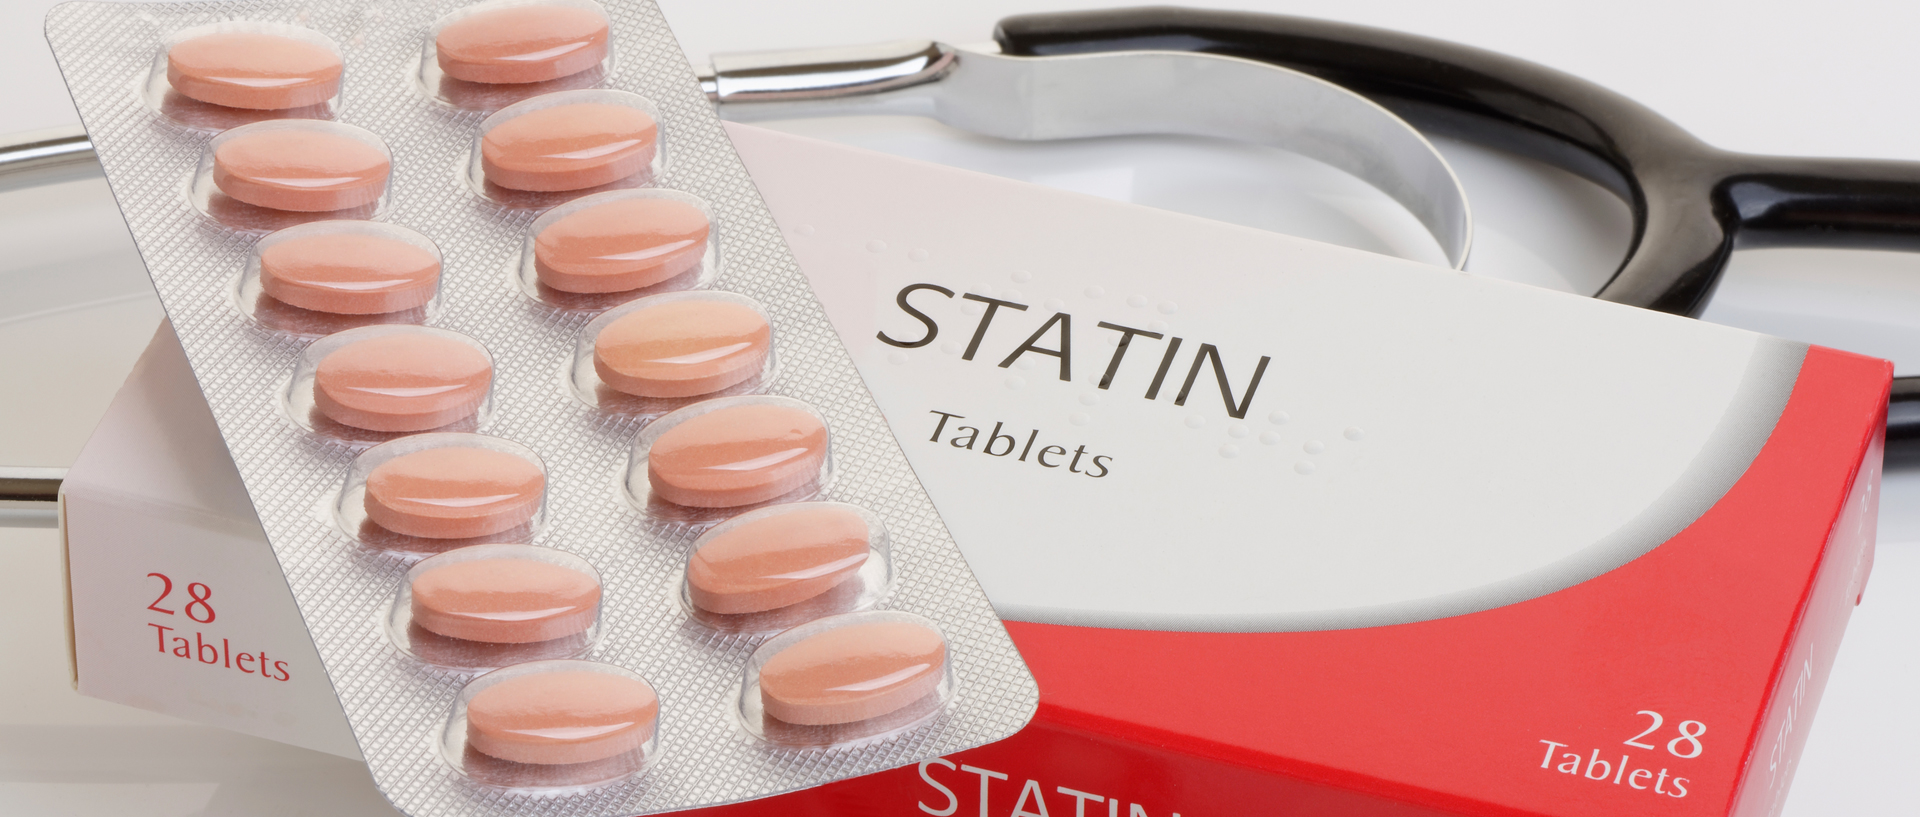 Statins Cause Diabetes - Consumer Reports